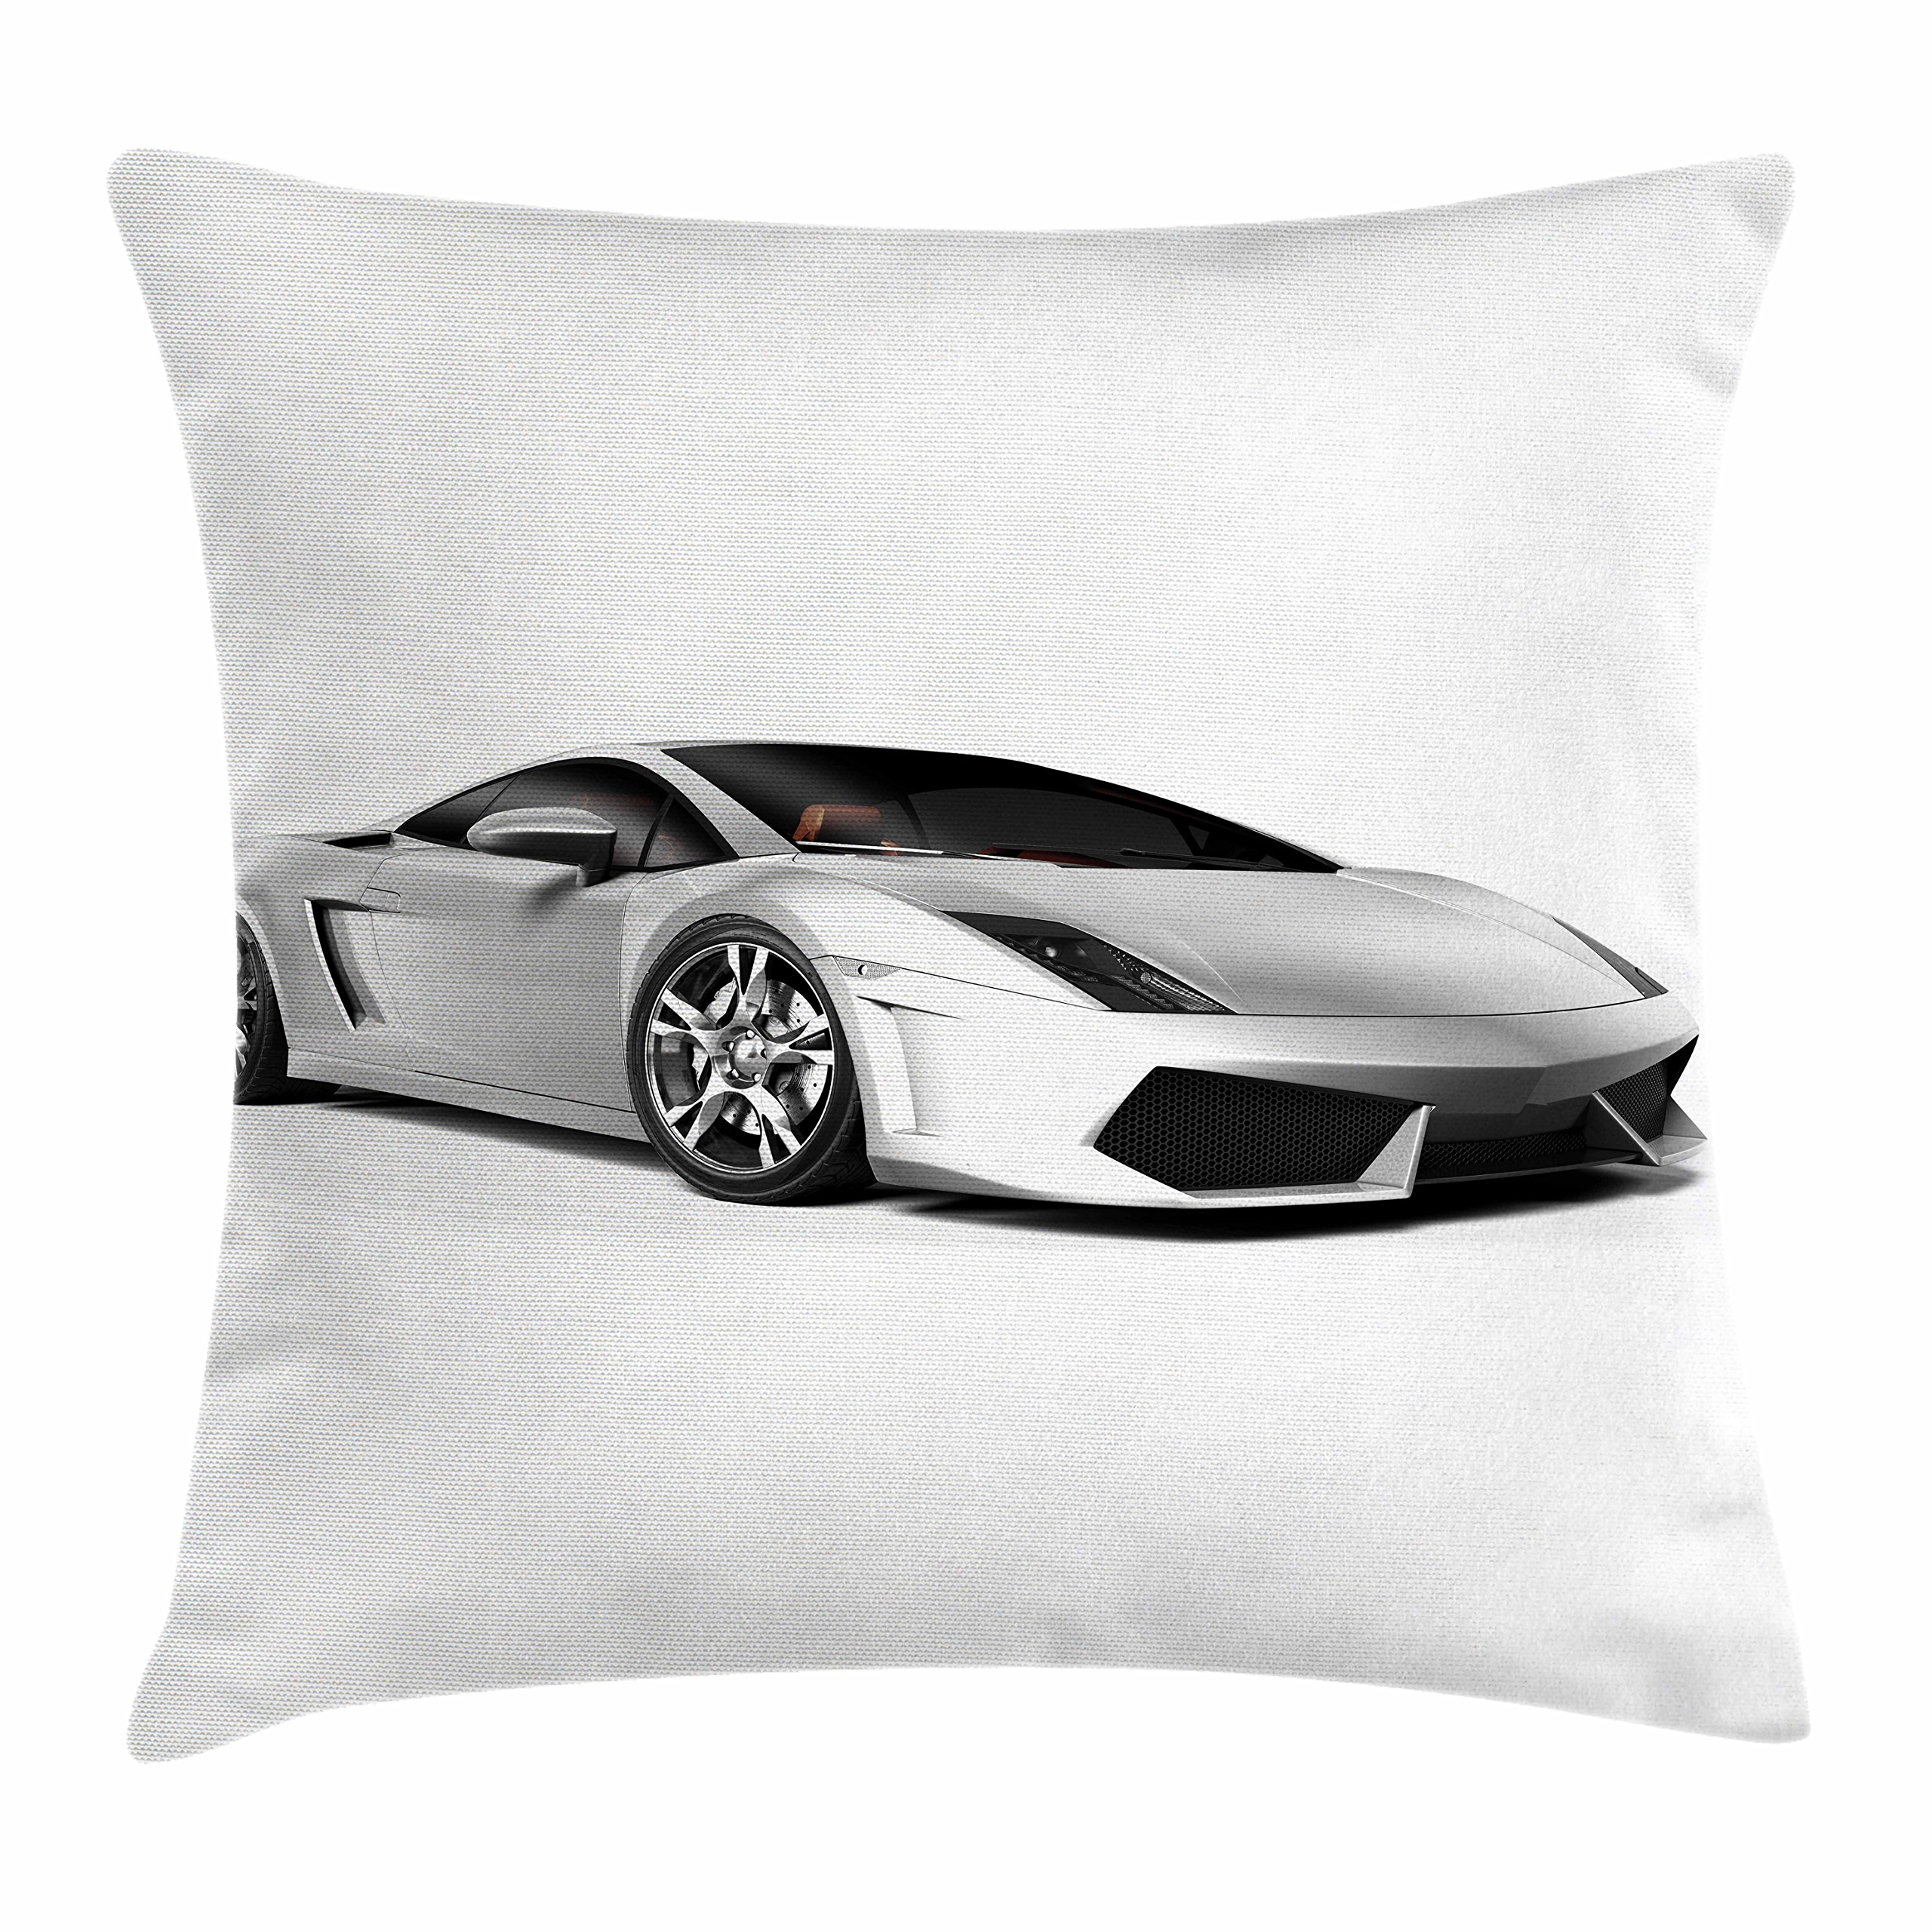 Lunarable Boy's Room Throw Pillow Cushion Cover, Sports Car Elegance with Futuristic Wheels Reflection Design Artful Print, Decorative Square Accent Pillow Case, 20 X 20 Inches, Silver Grey Black